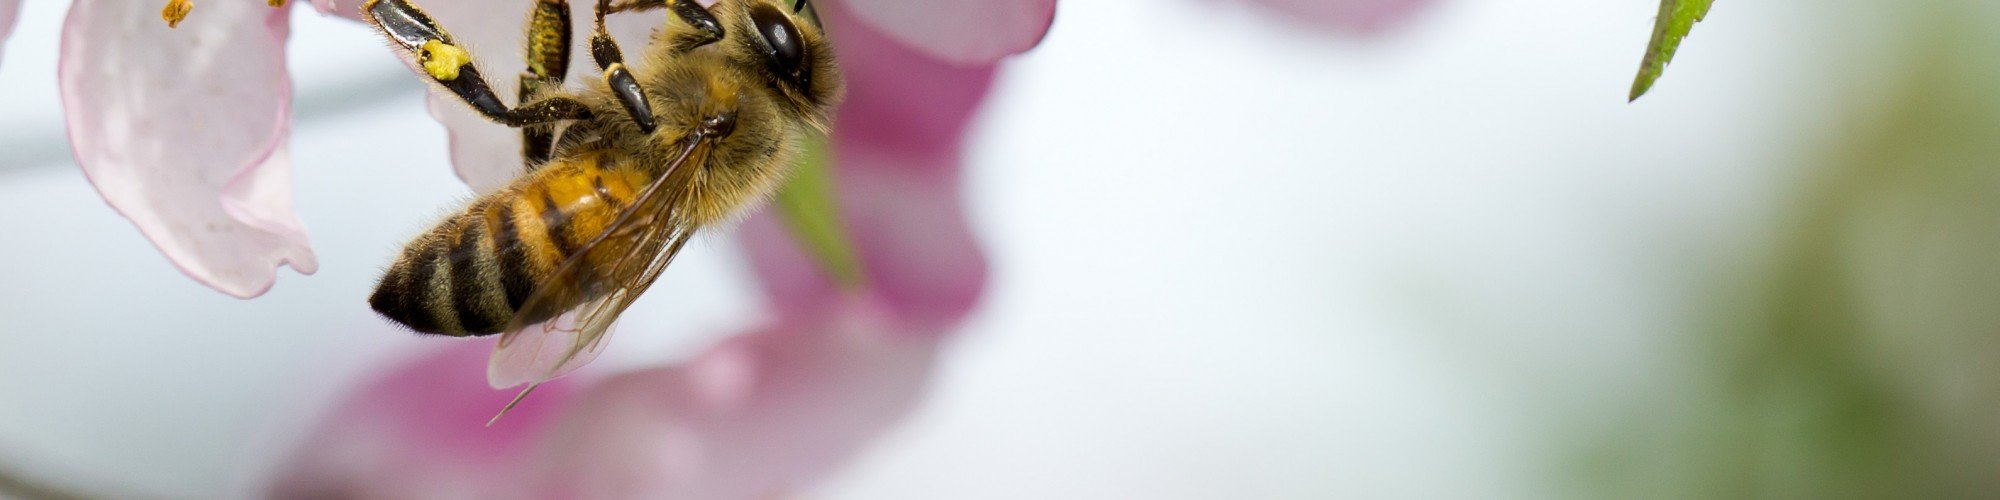 Honey_Bee_Cherry_Blossom_Shorebread2